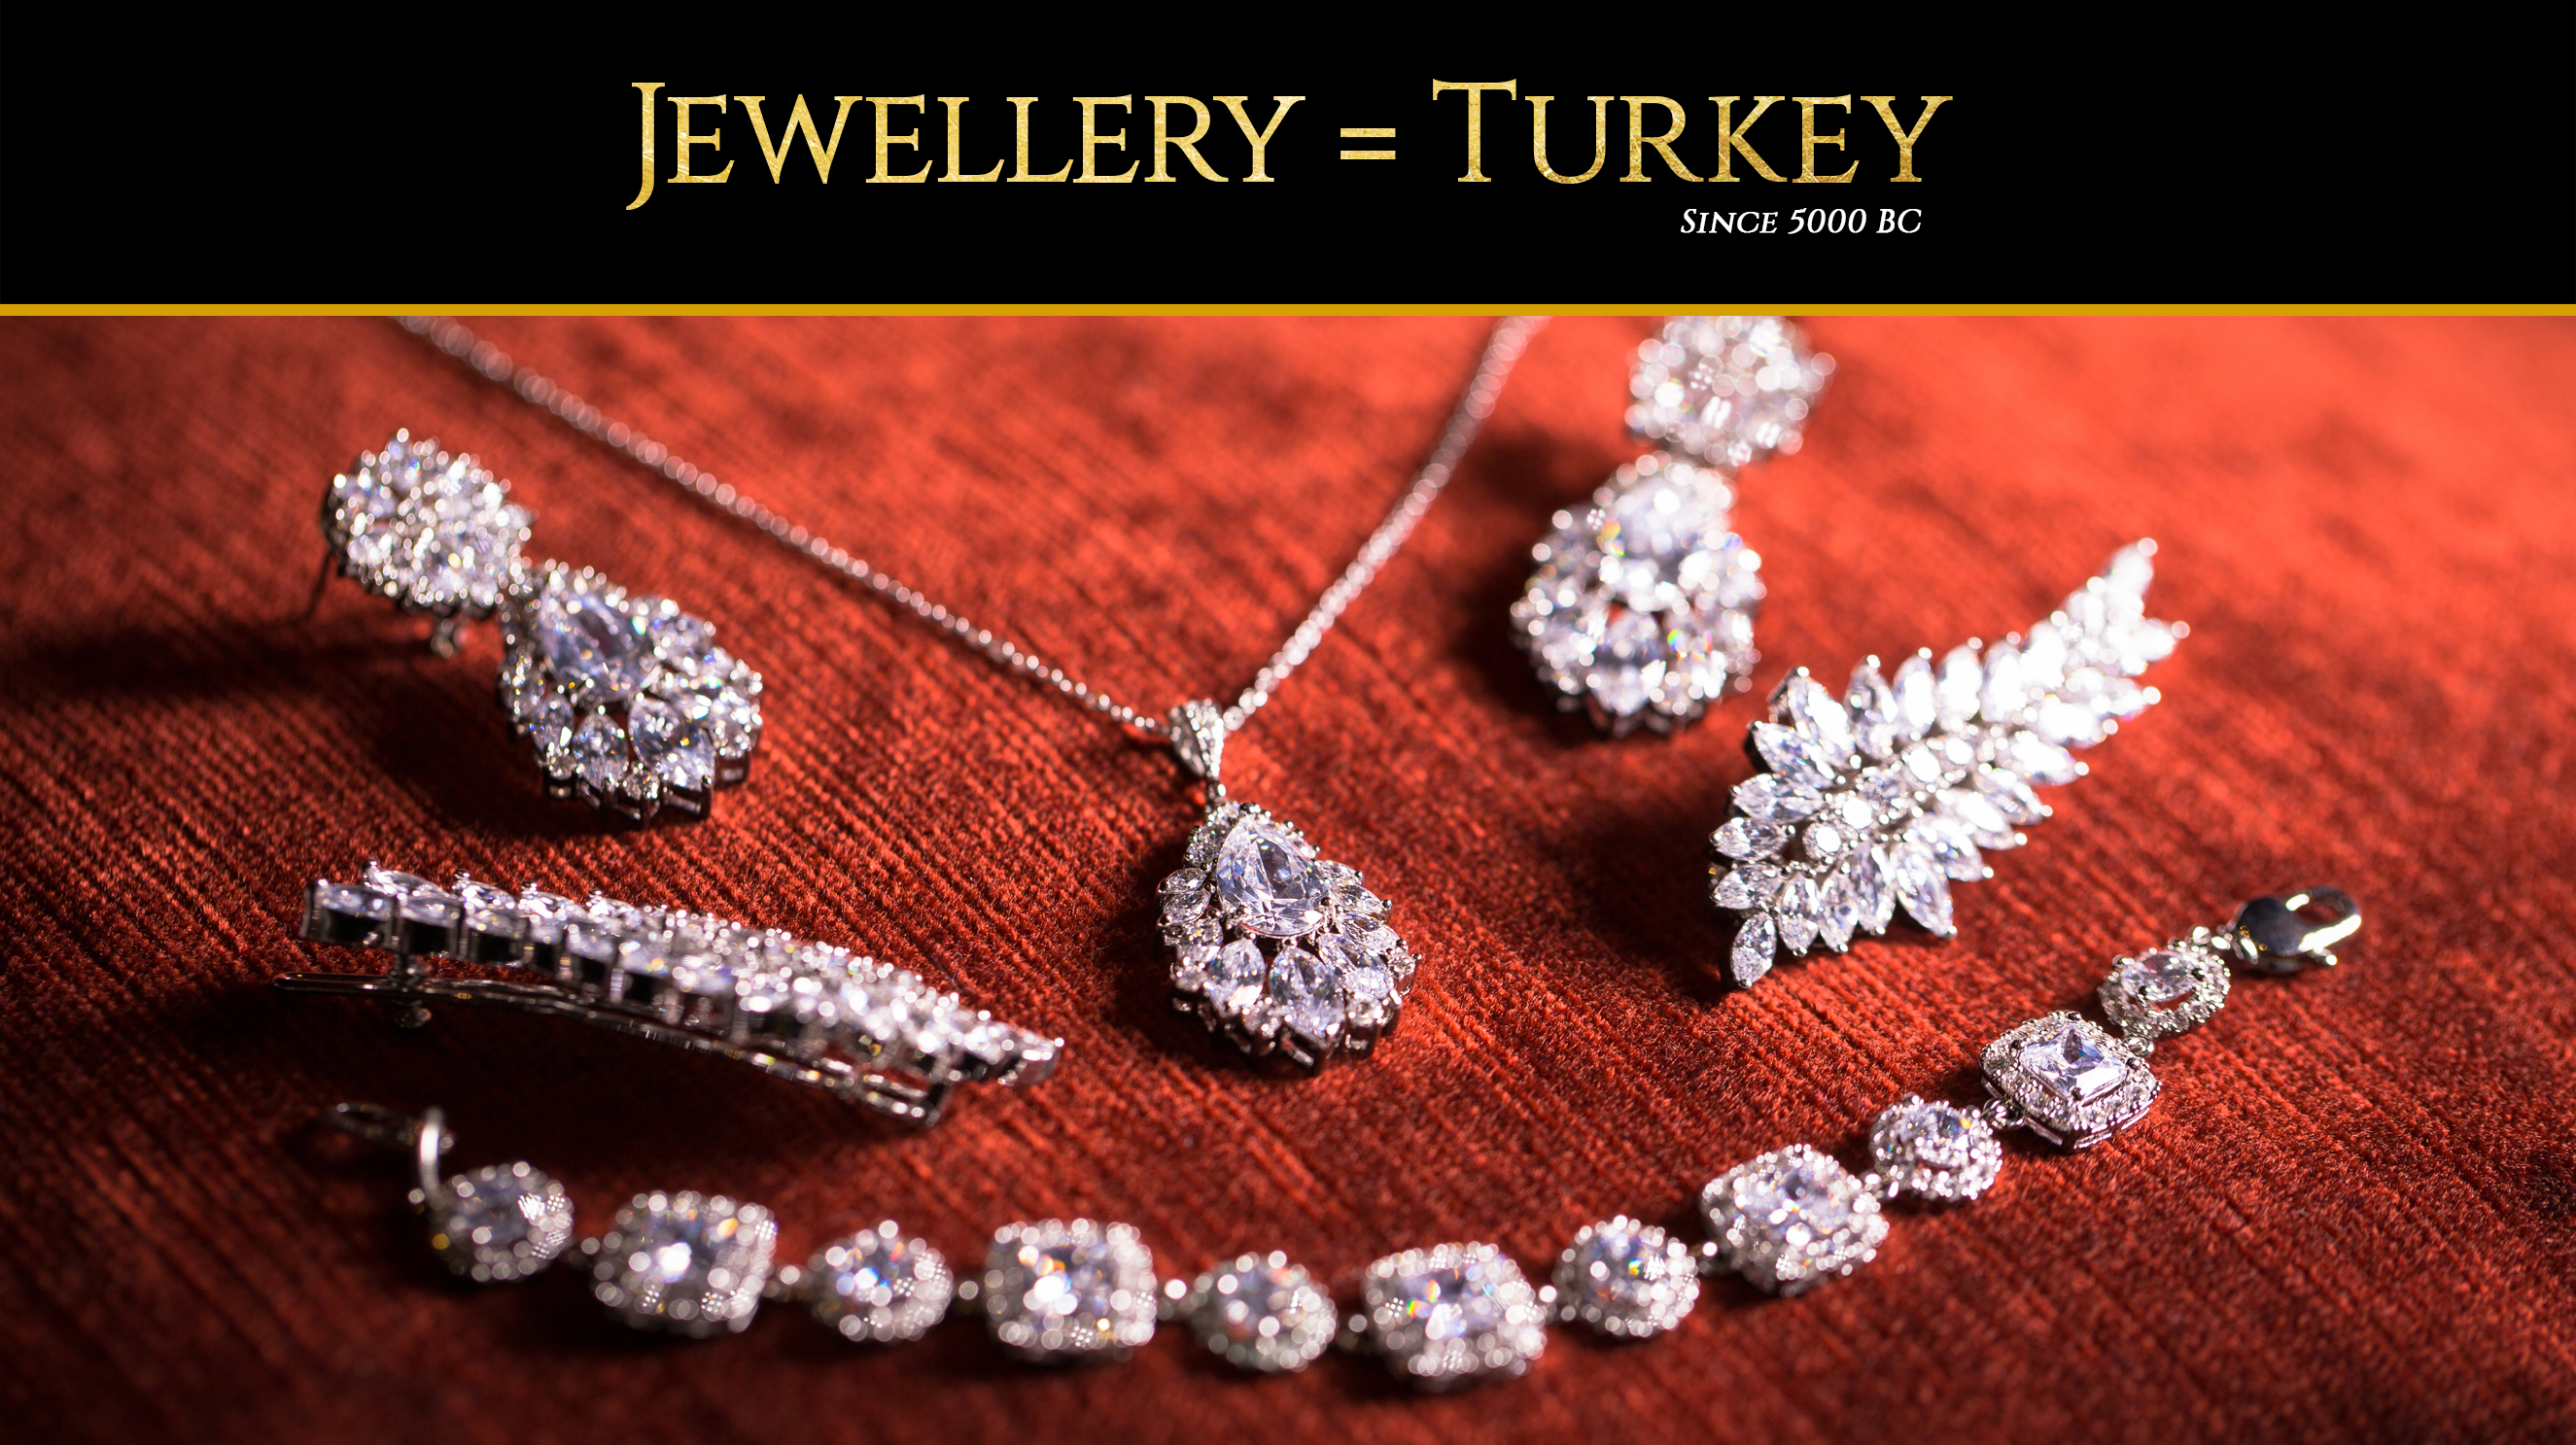 Jewellery = Turkey, because...